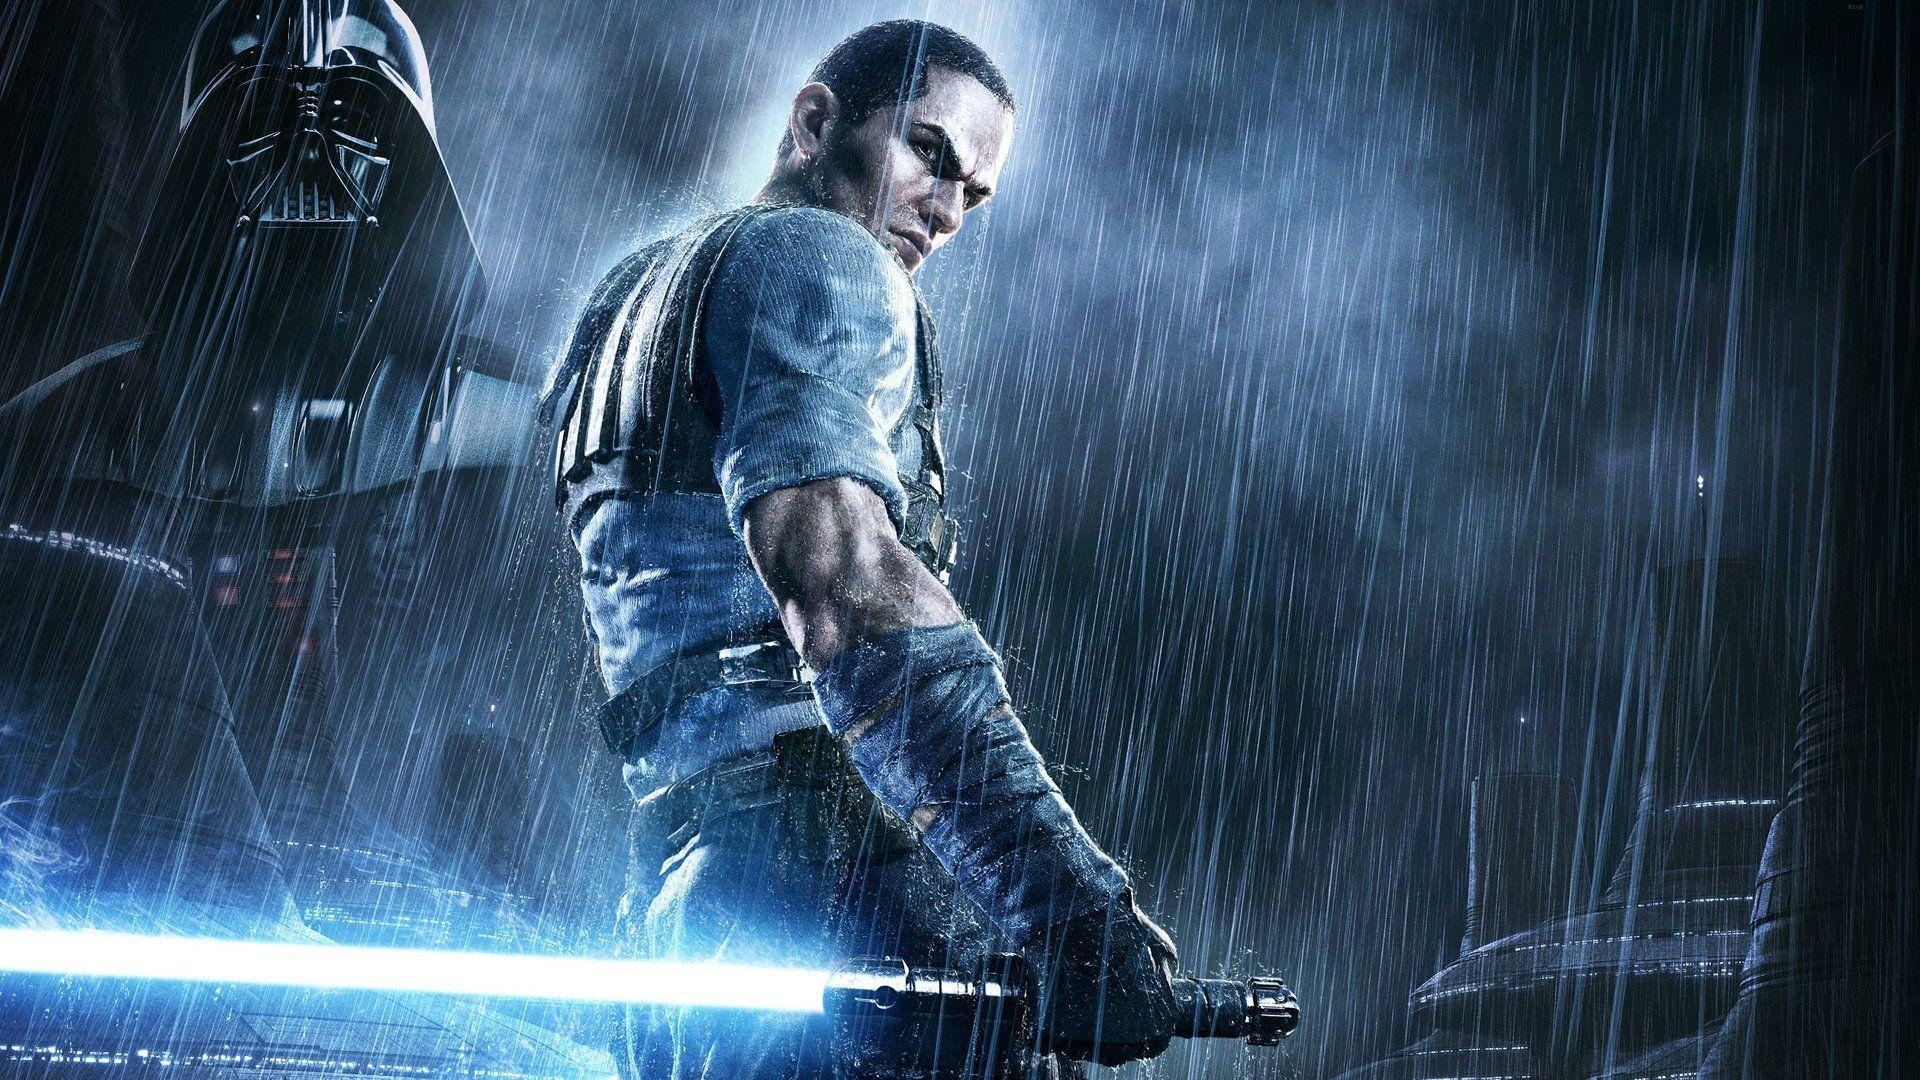 Star Wars The Force Unleashed Wallpapers Top Free Star Wars The Force Unleashed Backgrounds Wallpaperaccess